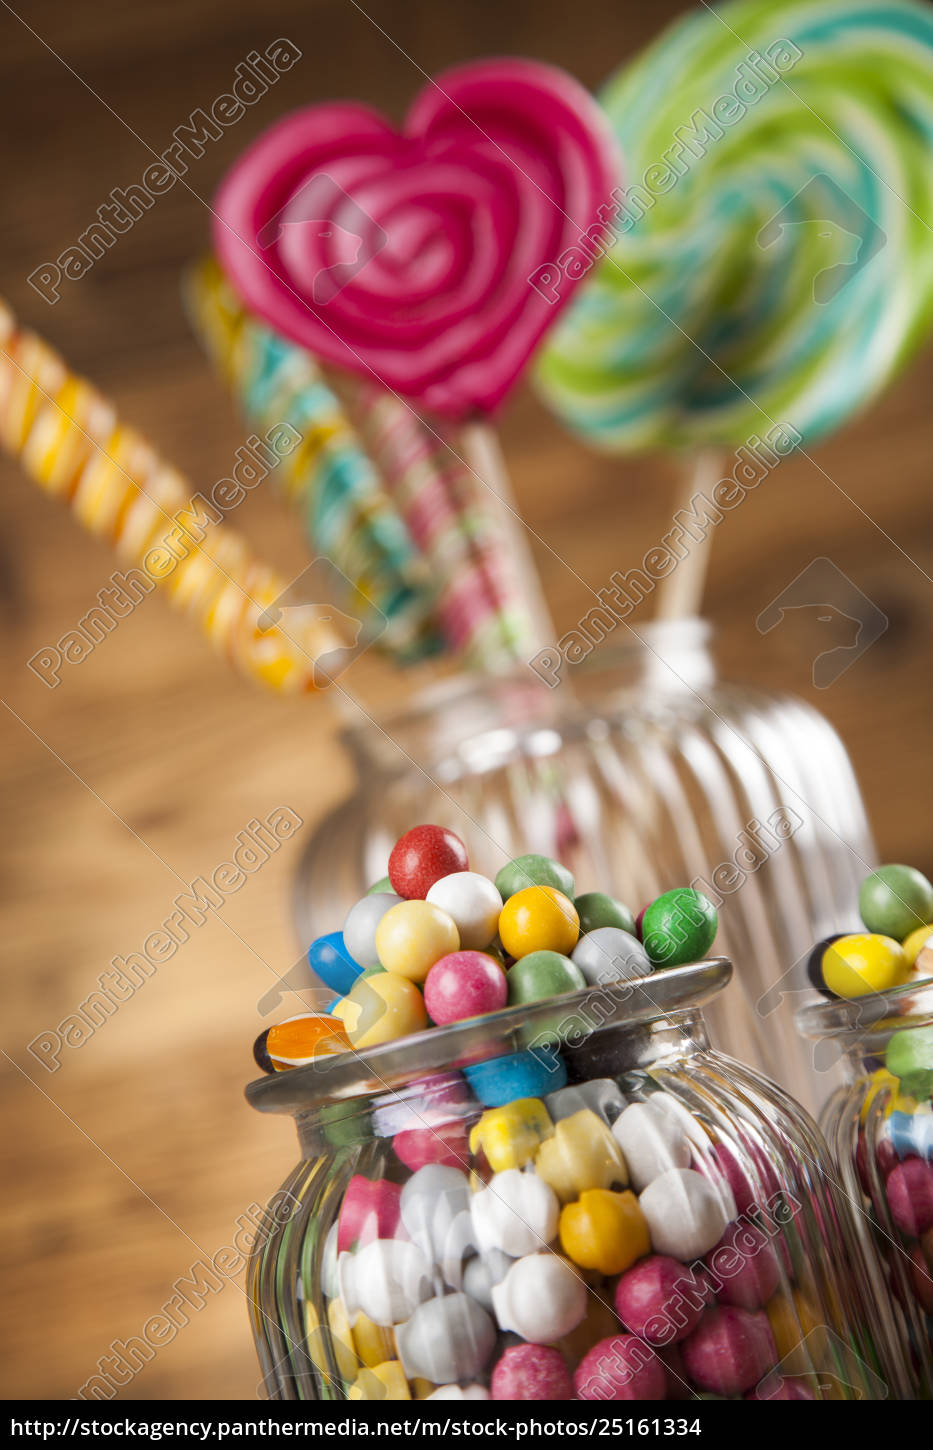 colorful, candies, in, jars, on, table - 25161334